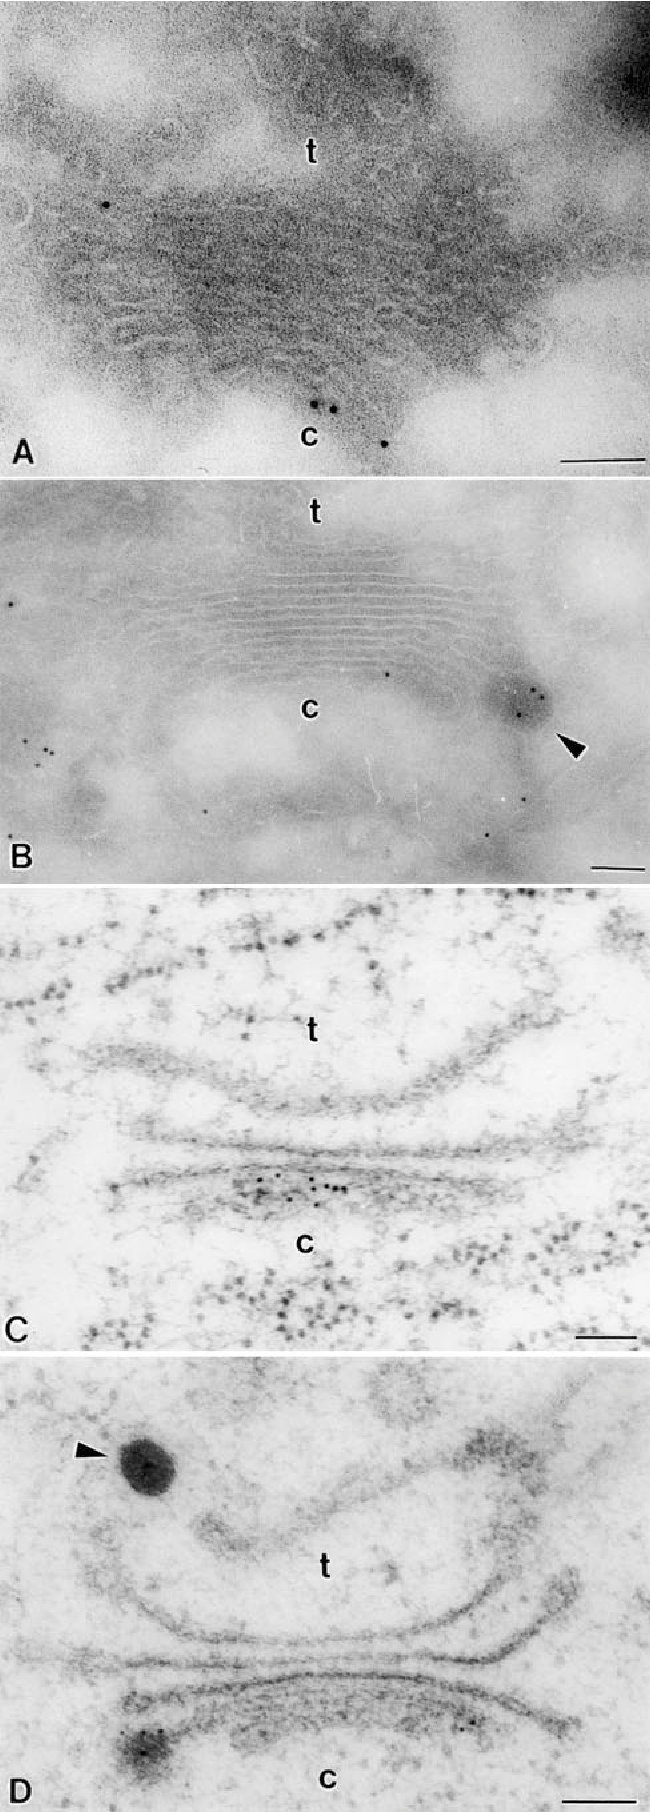 Figure 3. Immunogold staining of pea cotyledon Golgi stacks with antibodies against legumin. (A and B) Cryosection samples. Background labeling is very low. DVs are significantly labeled; the label is restricted to the cis-cisternae of the Golgi stack. (C and D) HPF